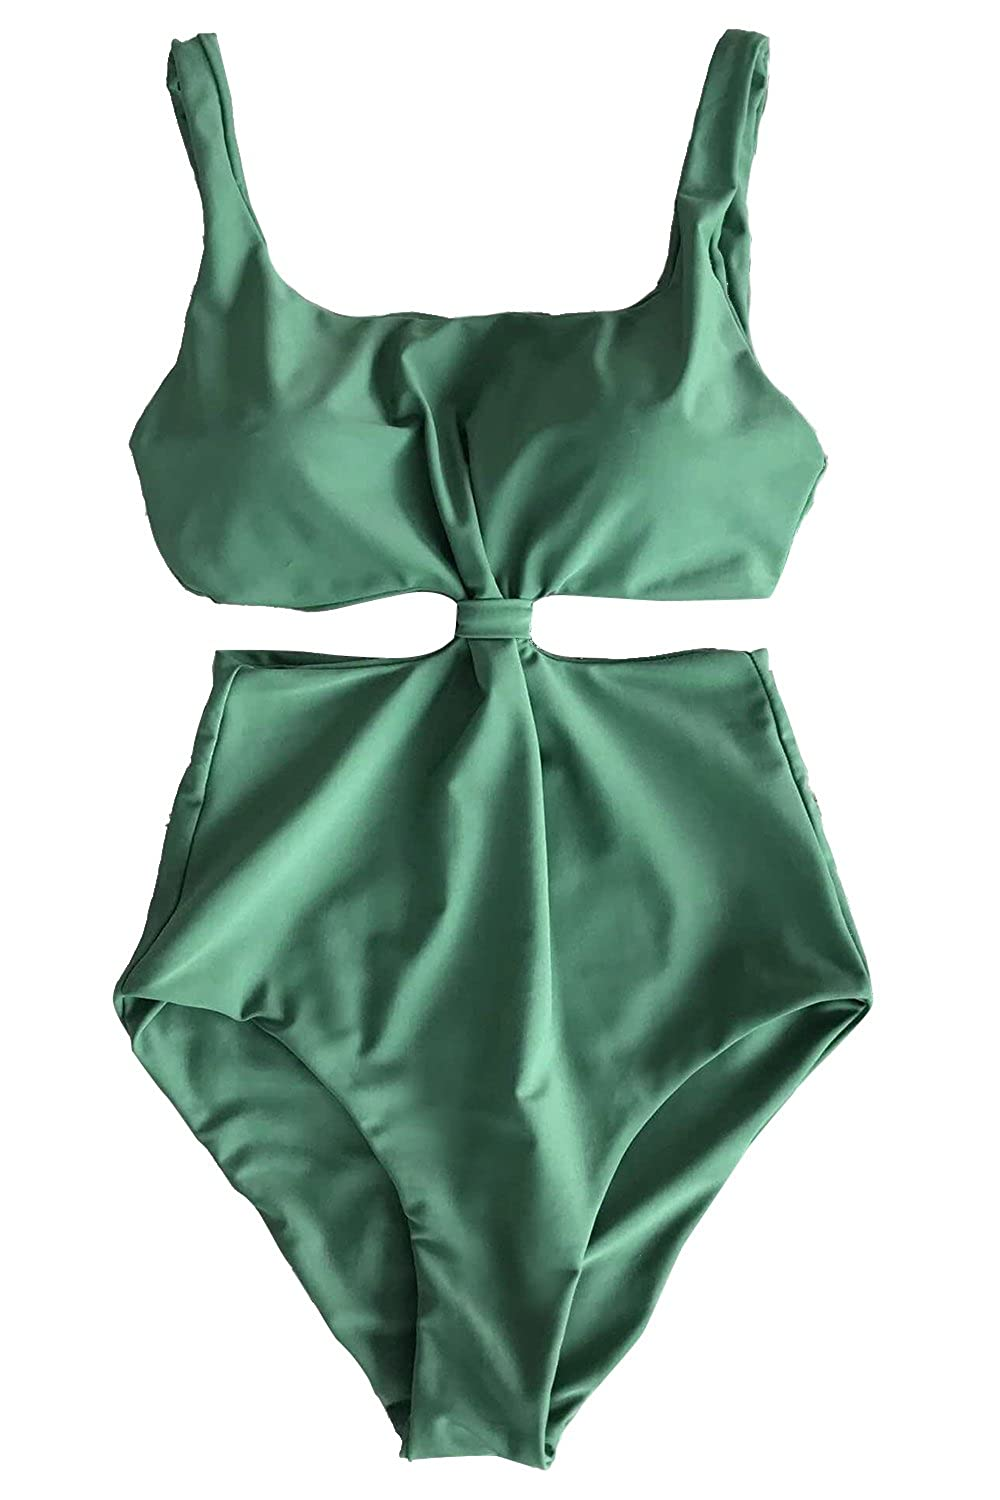 232823abf3 CUPSHE Fashion Women's Double-Layered Padding One-Piece Swimsuit,Green